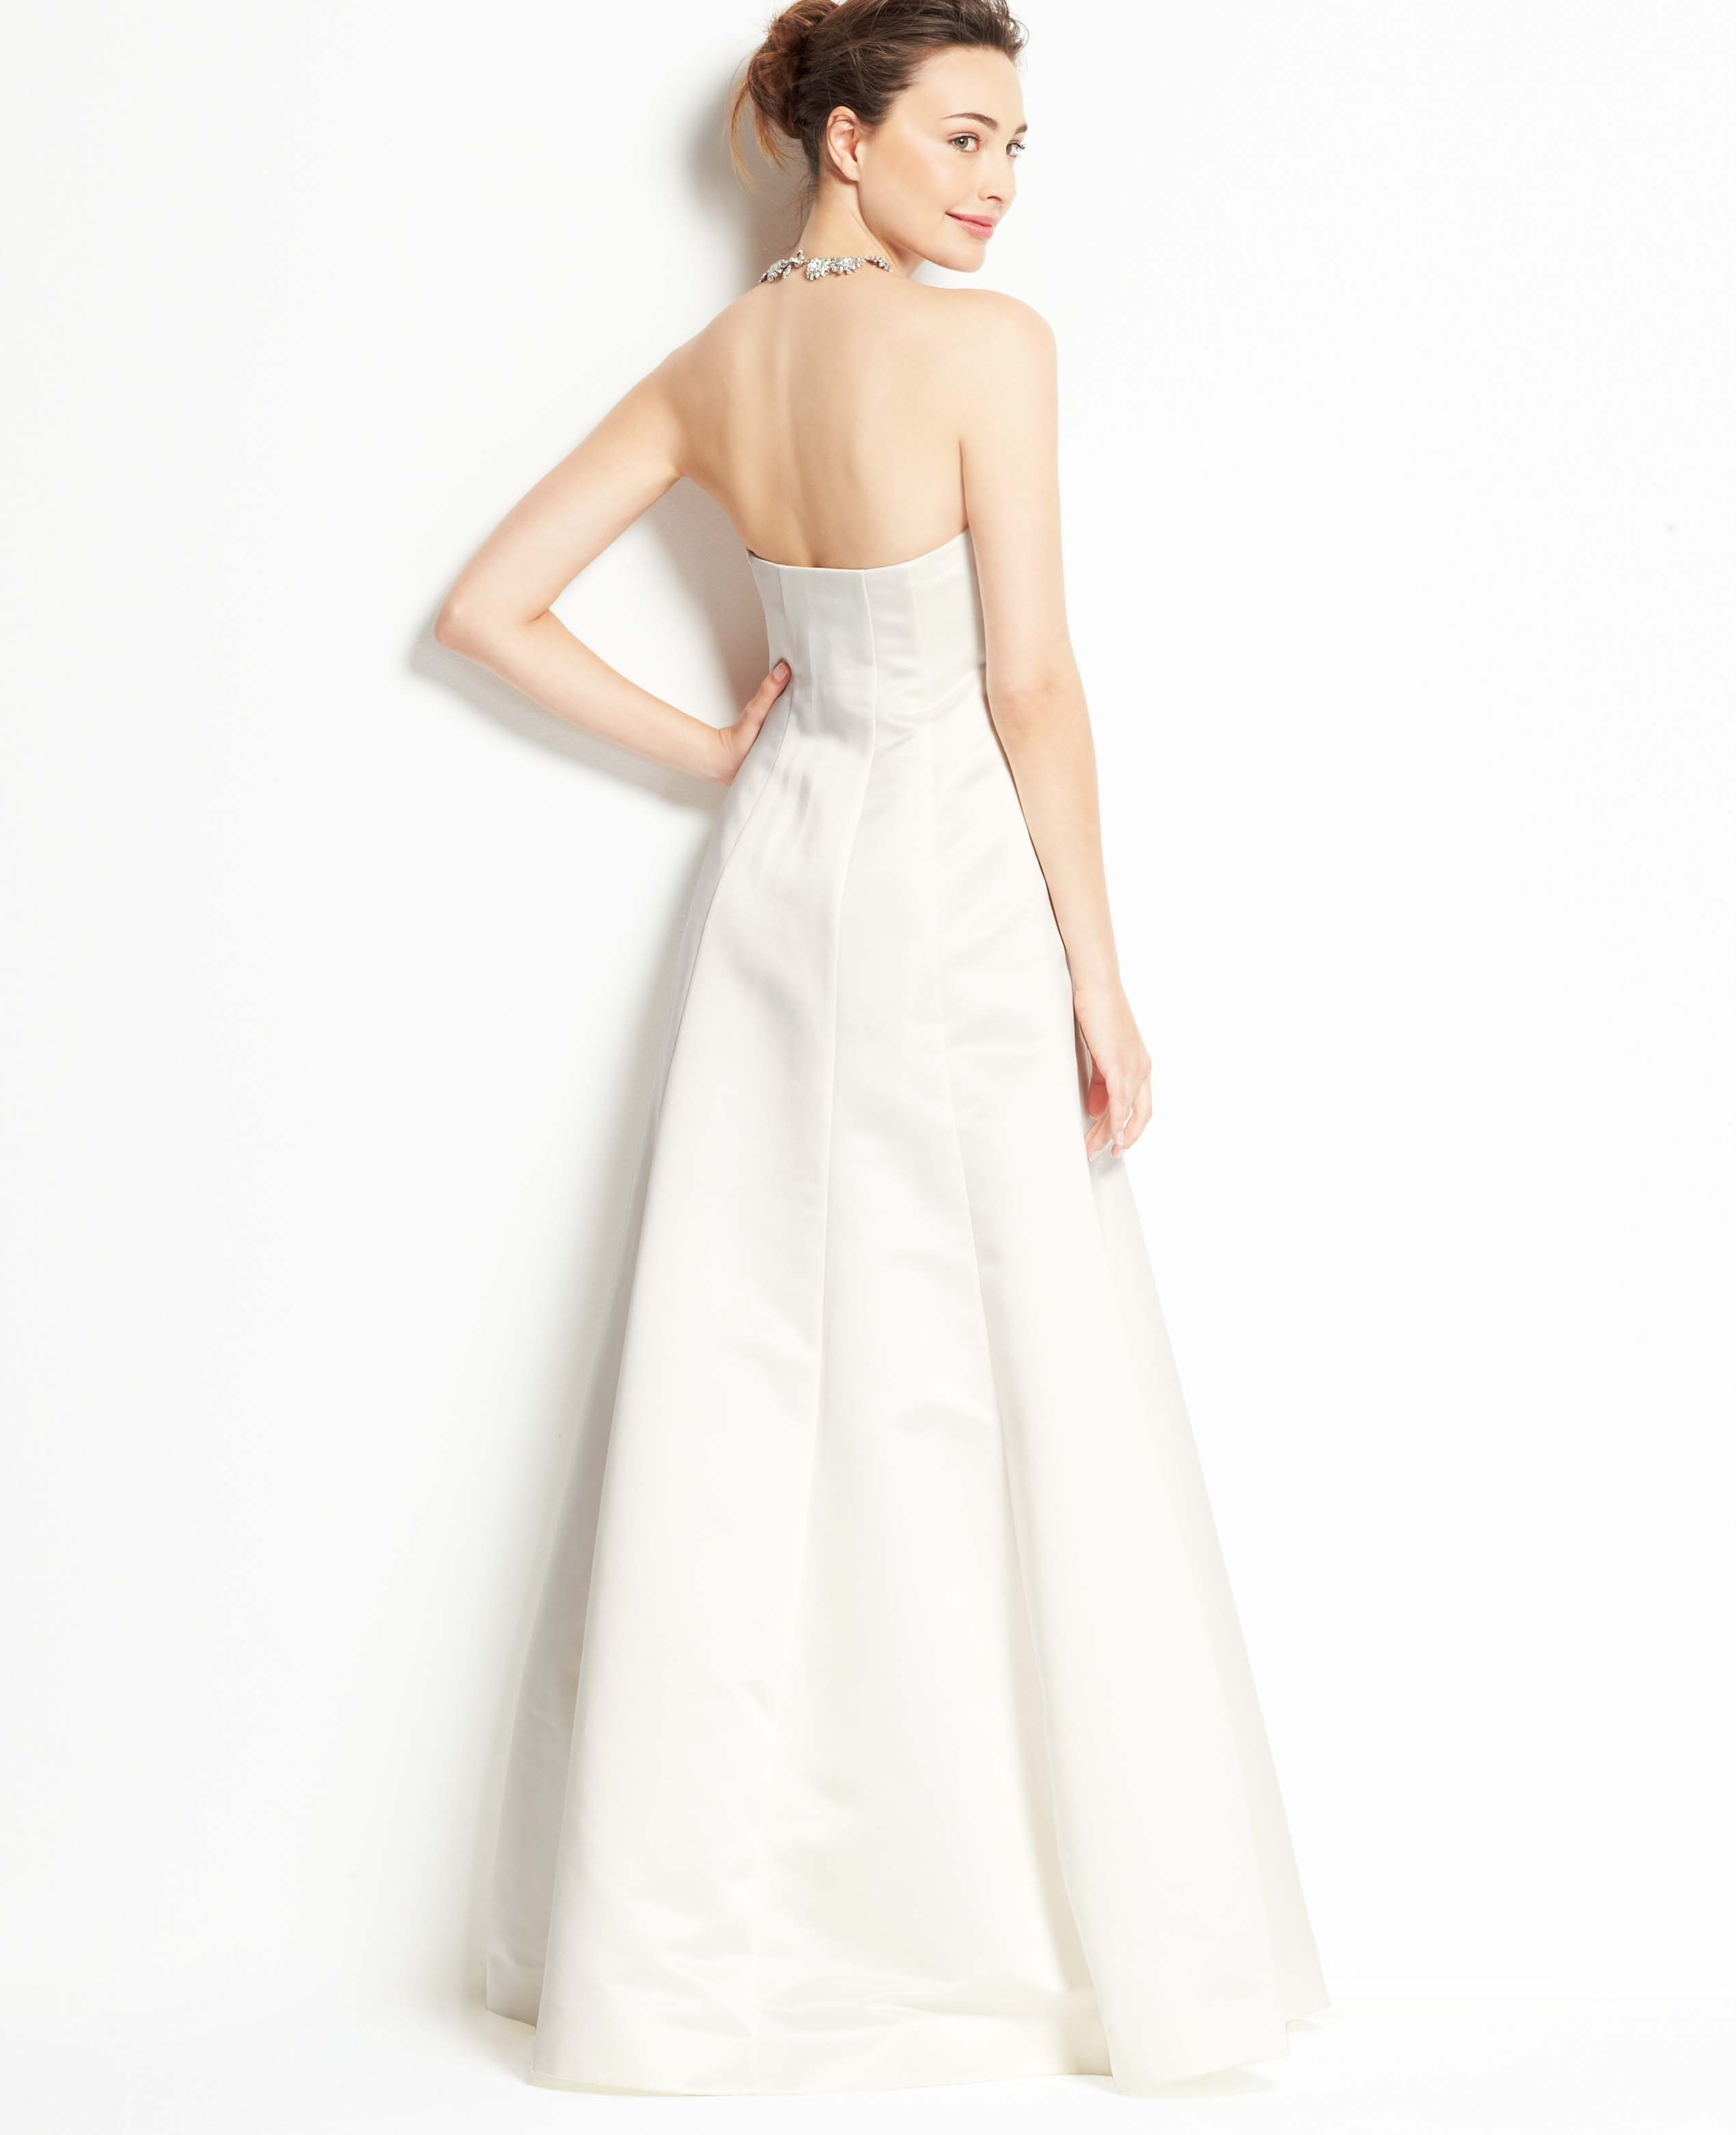 Lyst ann taylor petite duchess satin strapless wedding dress in white junglespirit Image collections